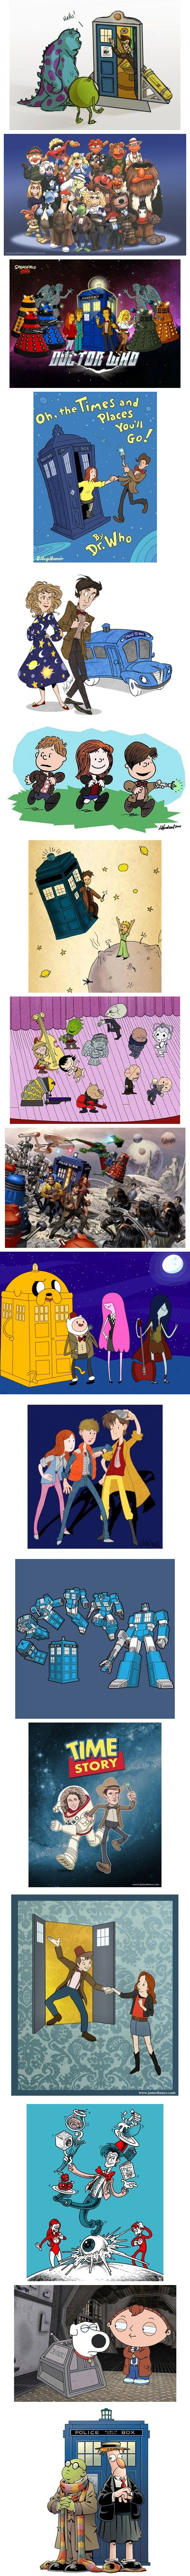 Doctor Who mash ups - The Peanuts ones are probably my favorites (somehow Schultz's style seems weirdly appropriate for Doctor Who).